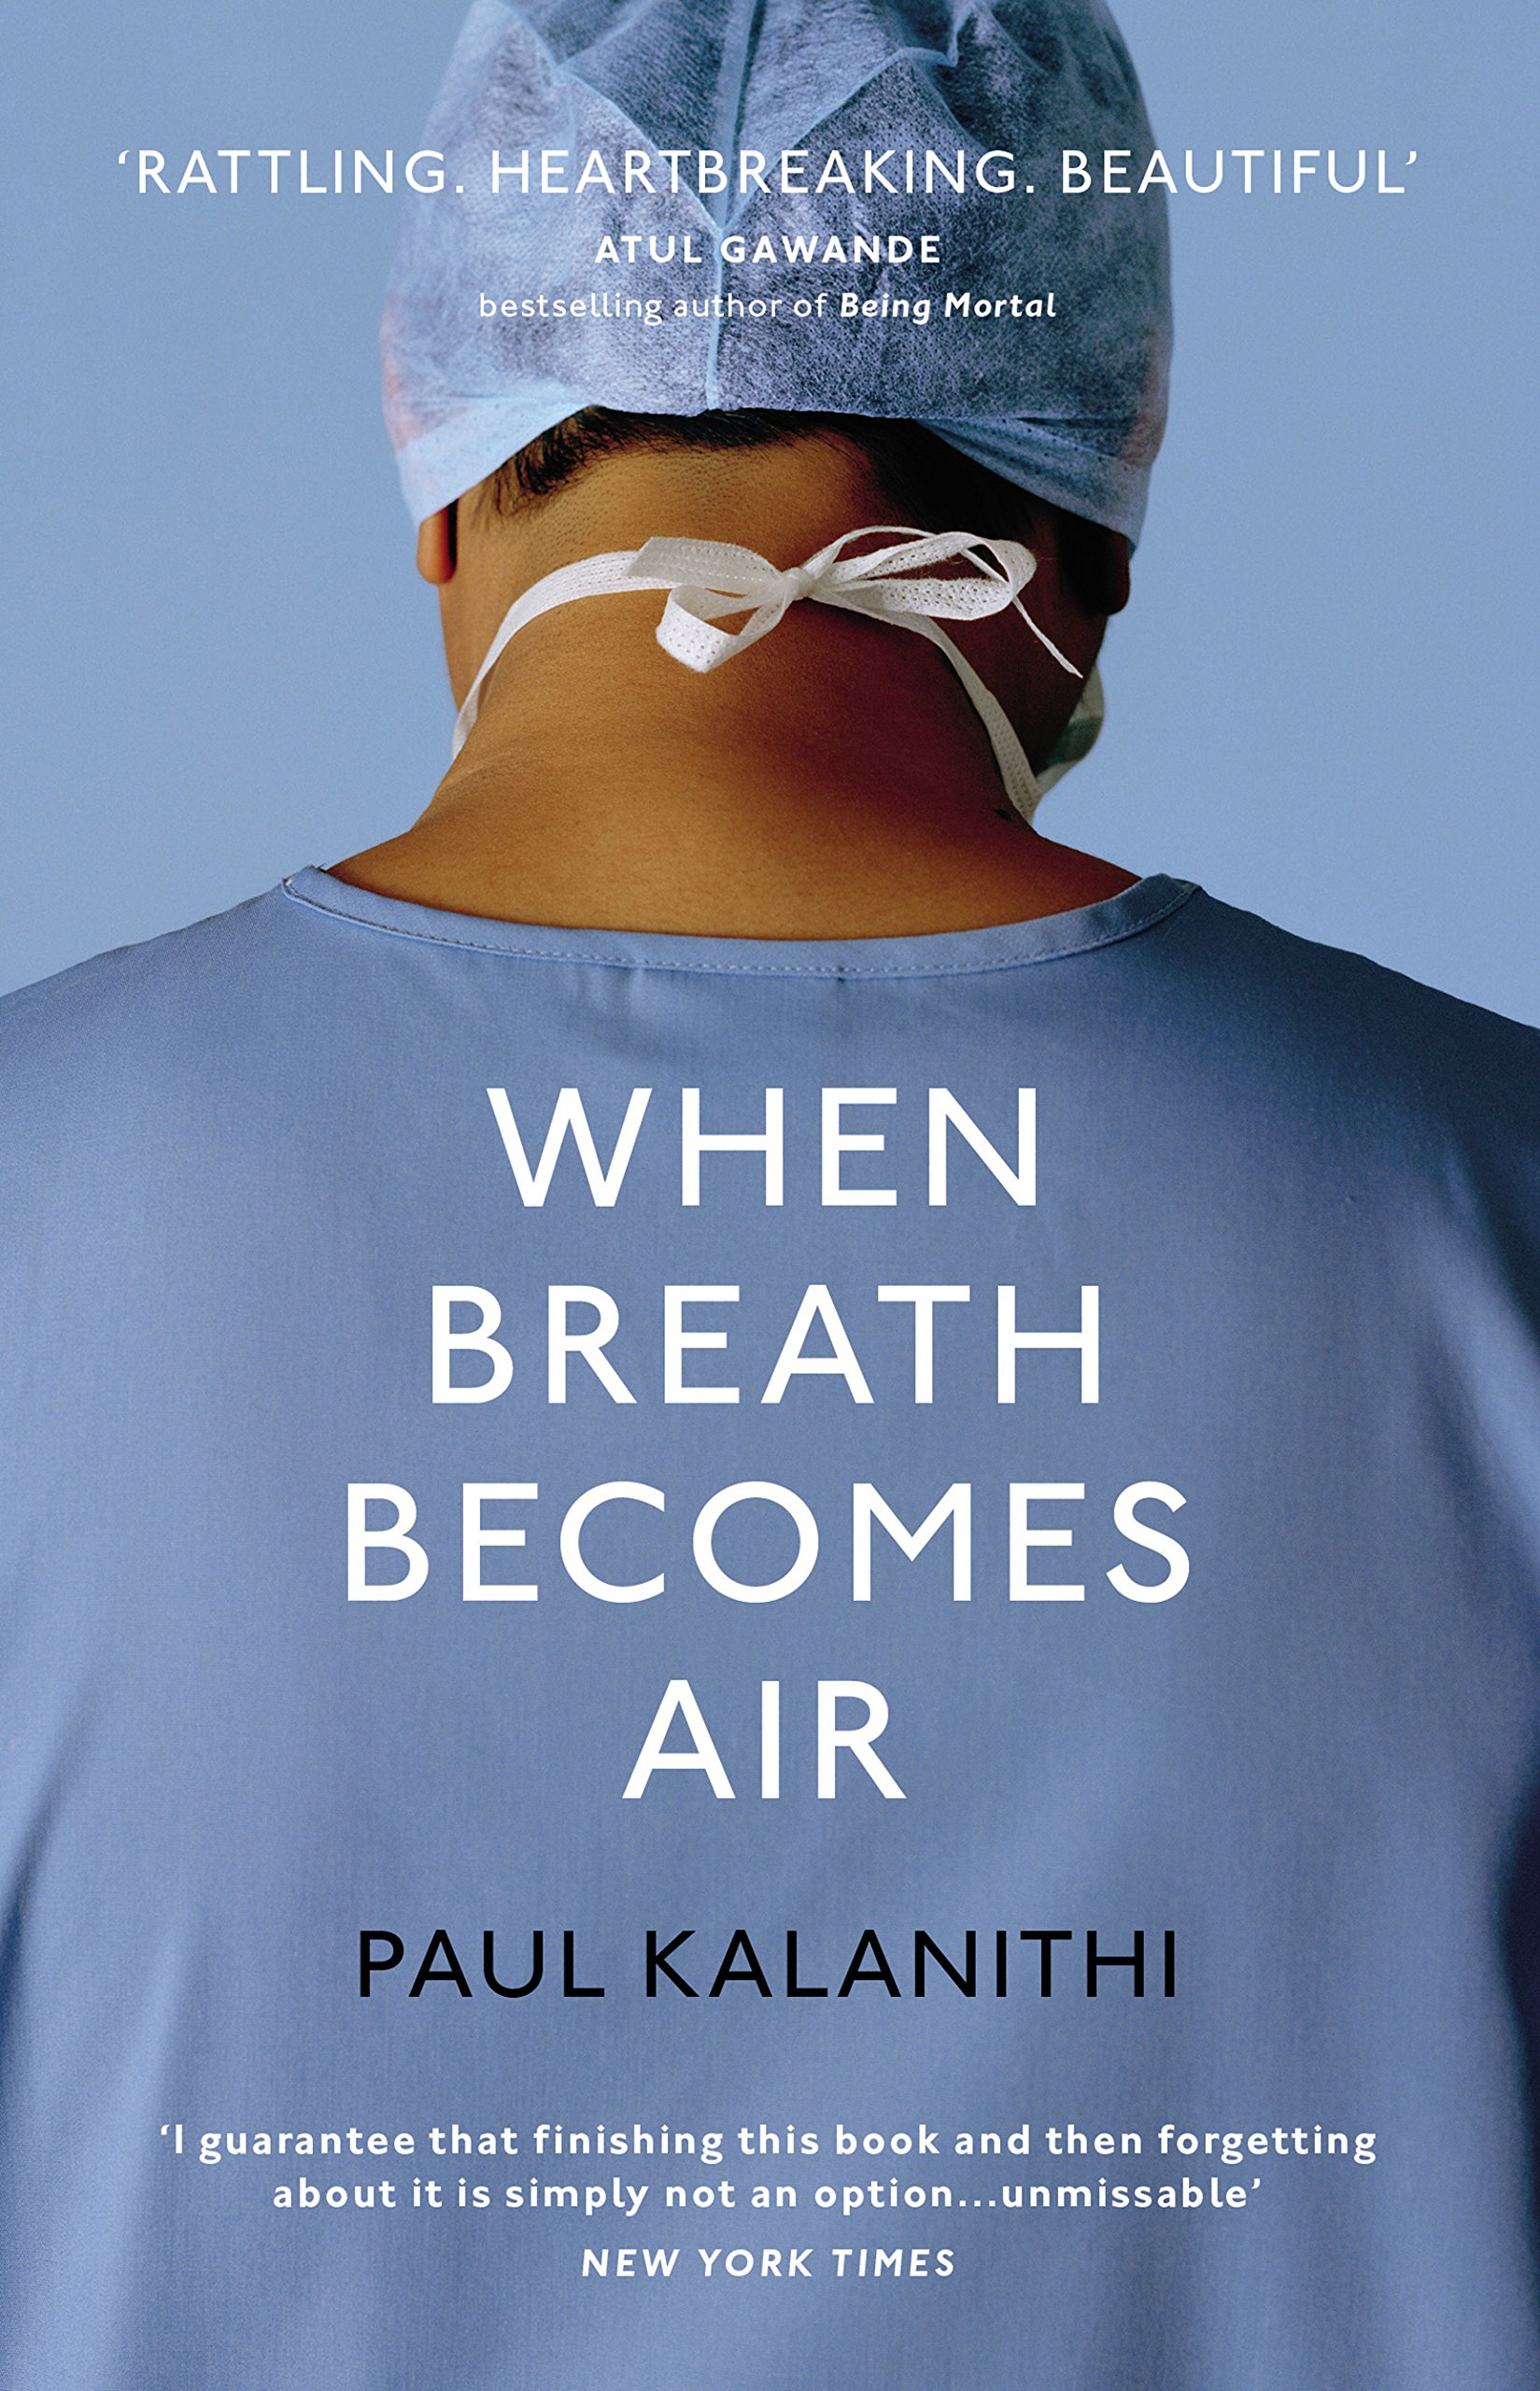 Friday faves book recommendations: When Breath Becomes Air, Paul Kalanithi